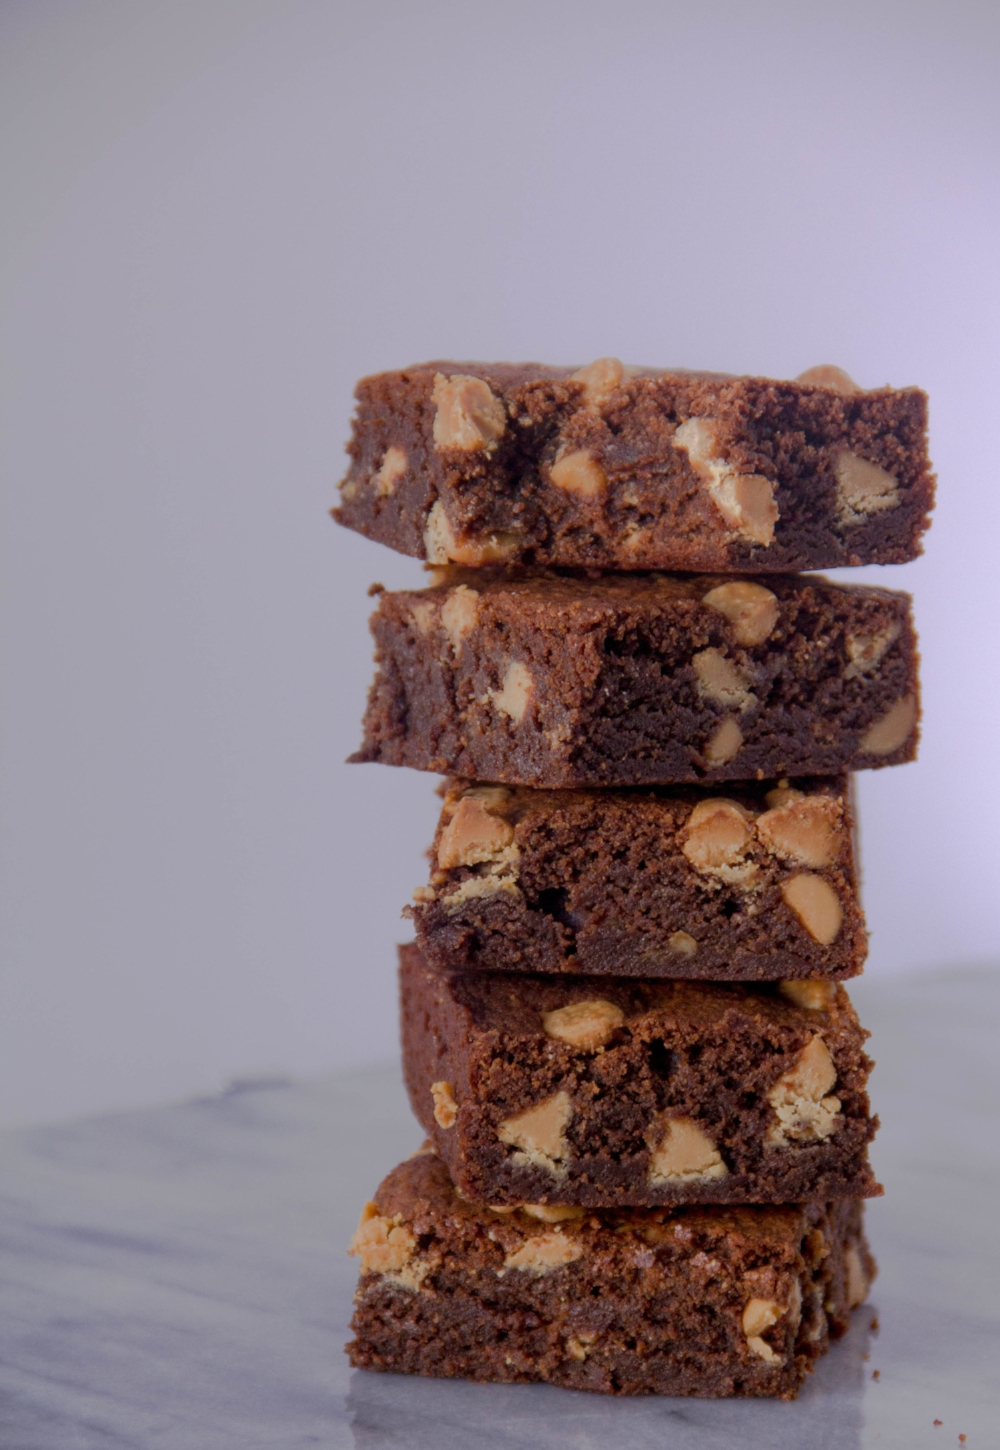 Molasses+and+Peanut+Butter+Brownies+Recipe+2.jpg